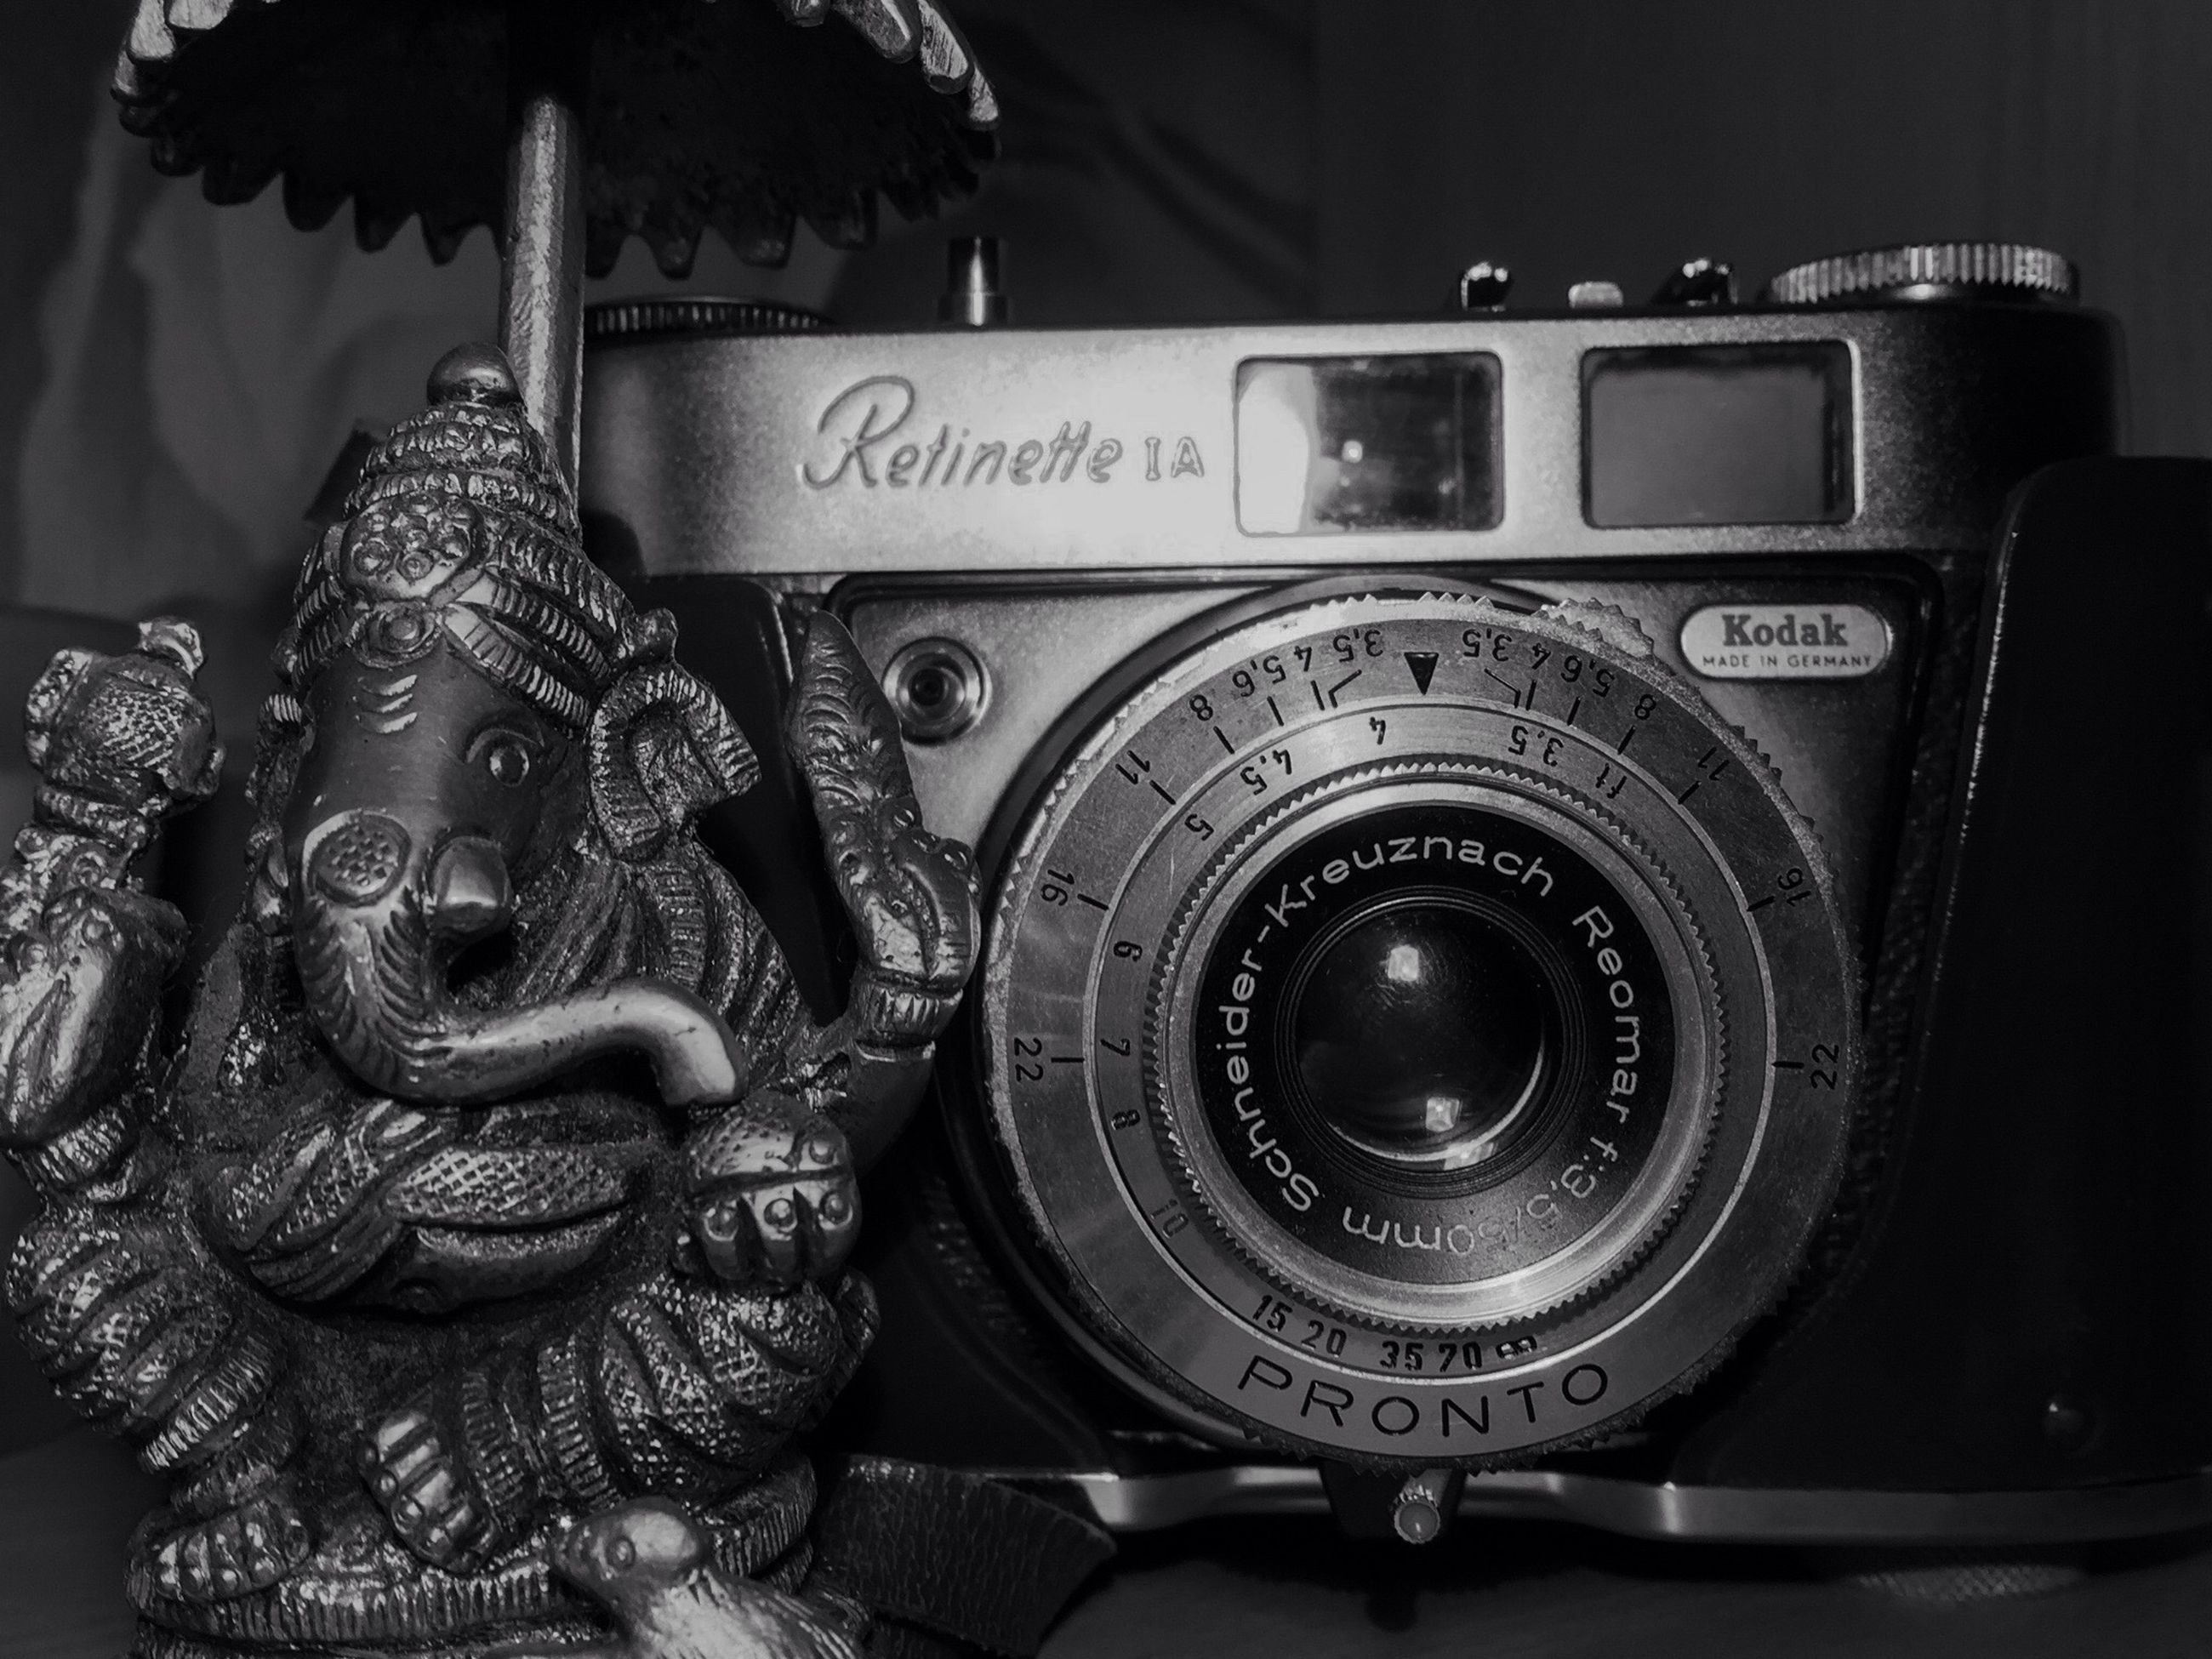 camera - photographic equipment, photography themes, text, close-up, indoors, old-fashioned, no people, technology, day